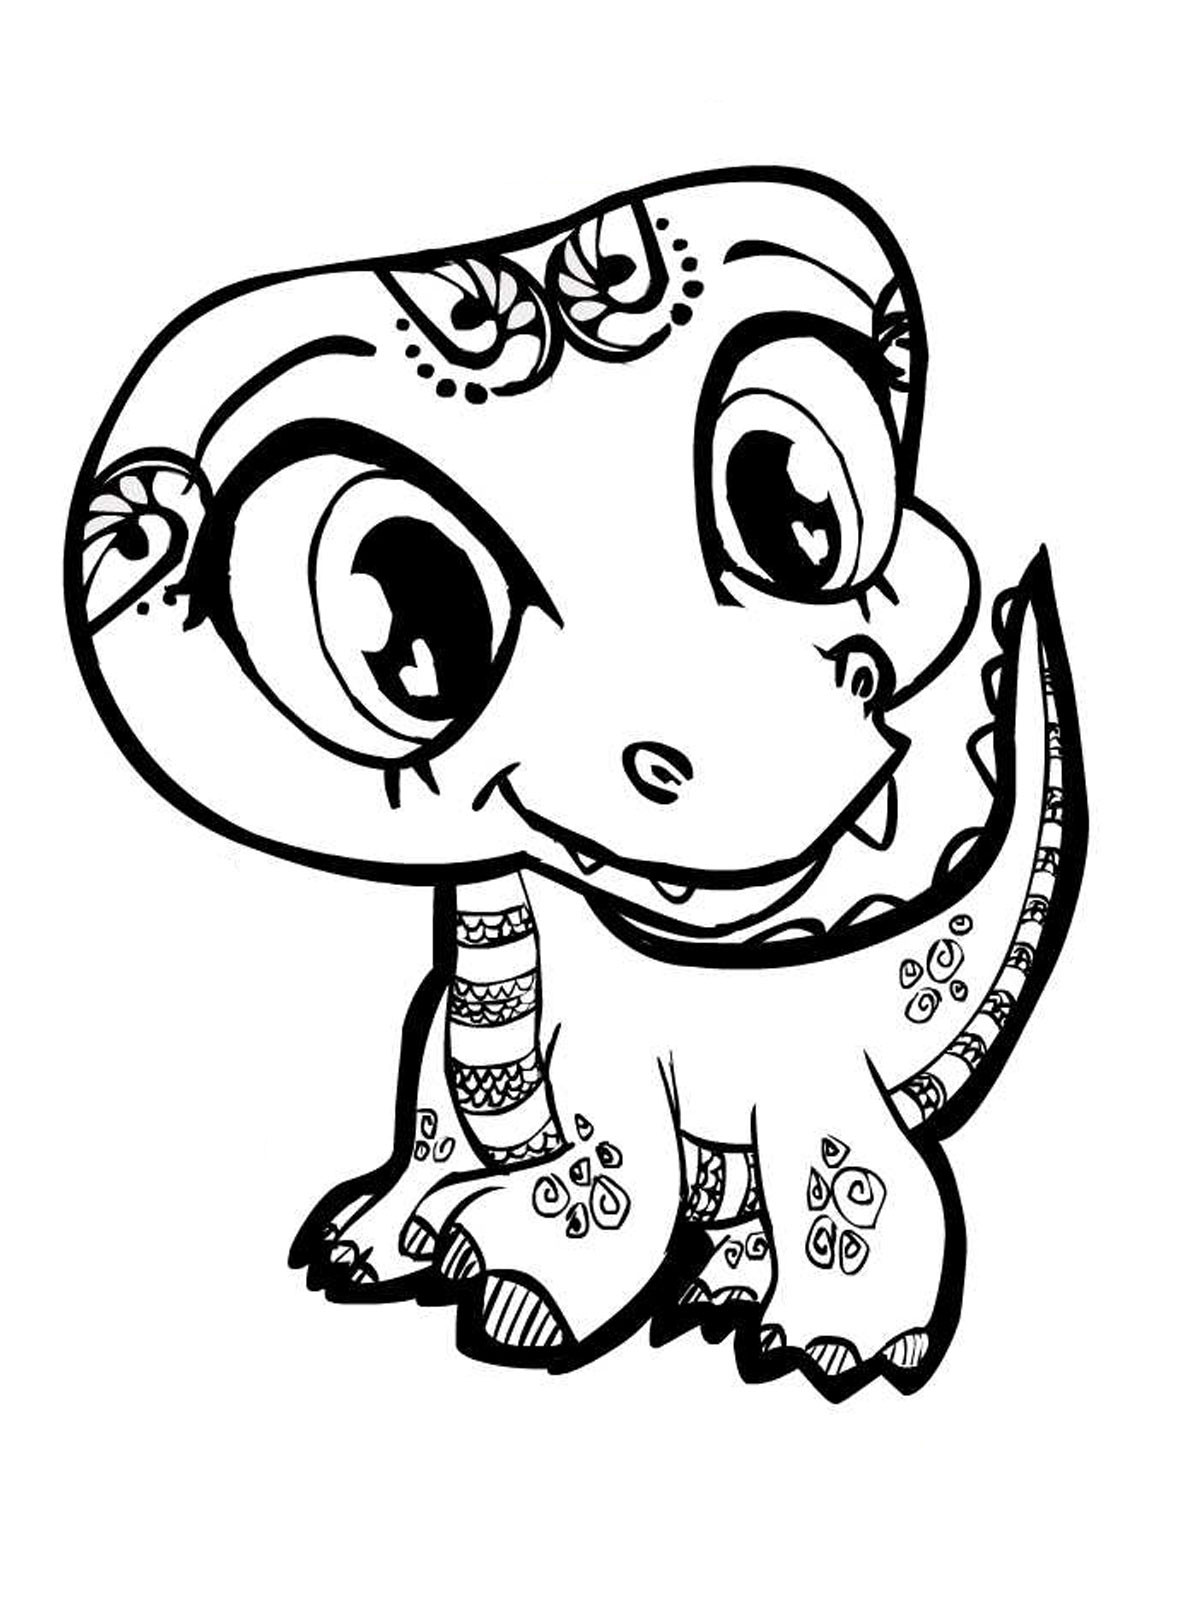 Cute Animal Coloring Pages For Adults  Animal Coloring Pages for Adults Bestofcoloring